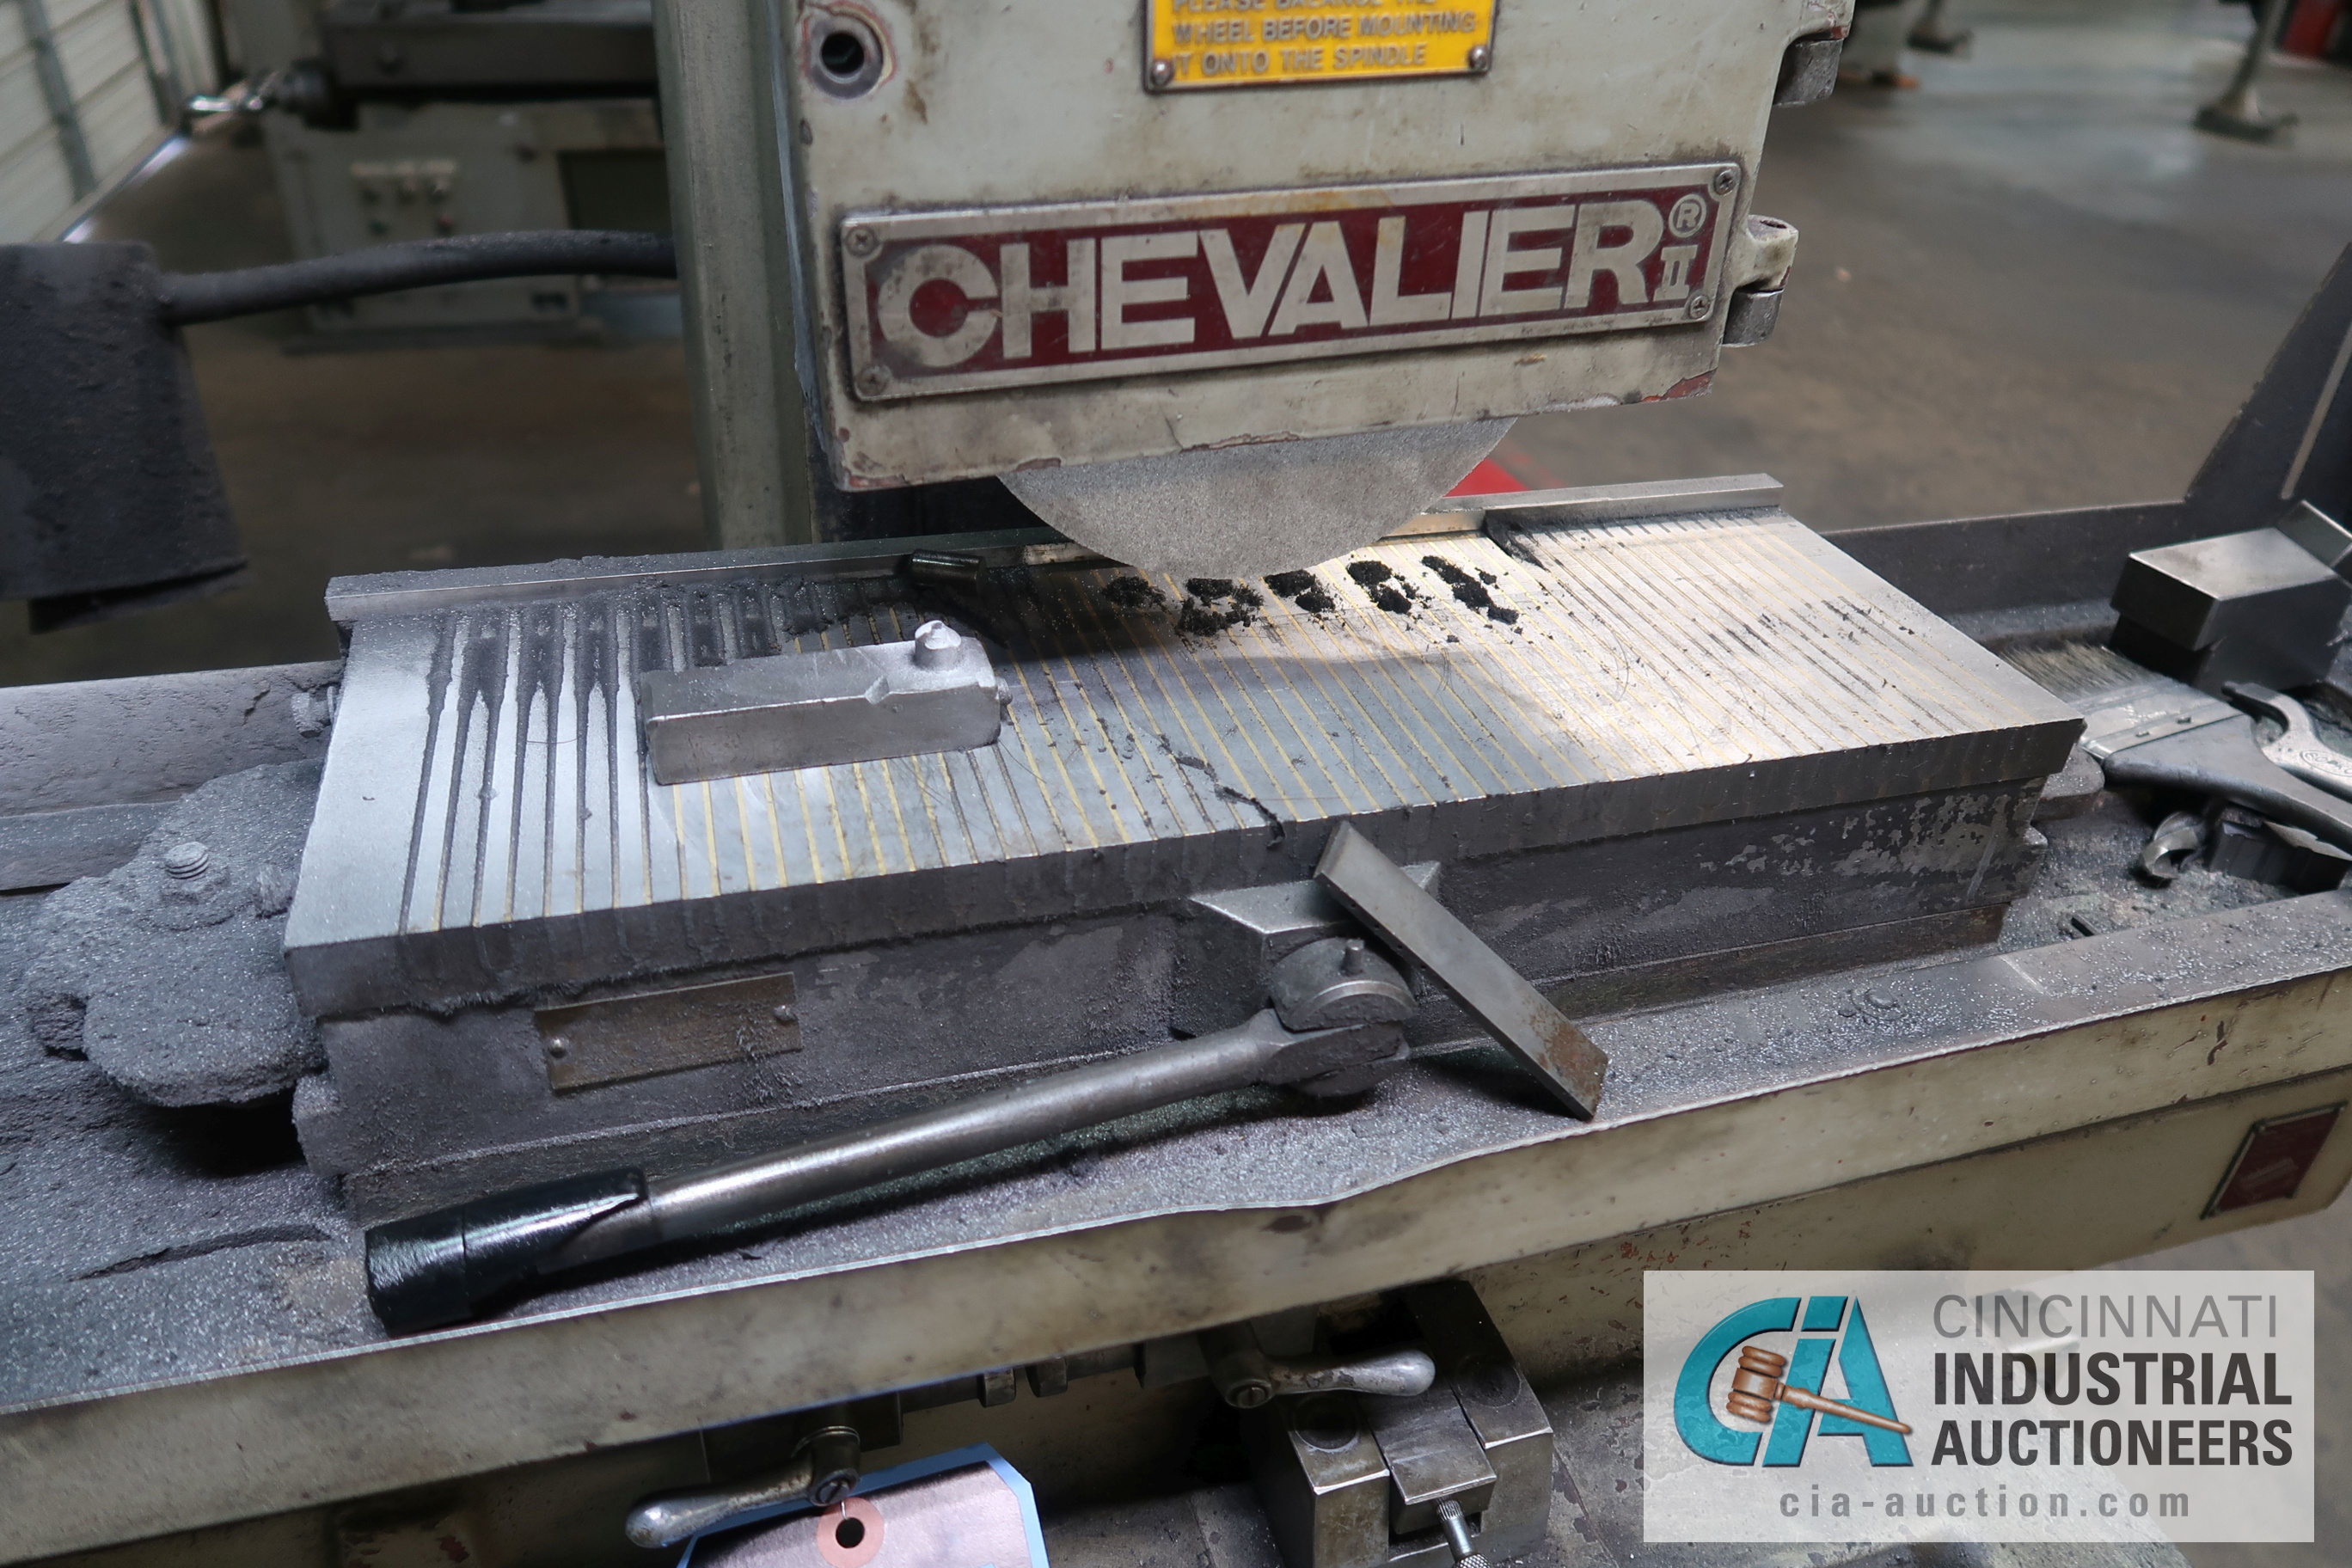 """6"""" X 18"""" CHEVALIER MODEL FSG618 HAND FEED SURFACE GRINDER; S/N 02C-5136 - Image 3 of 5"""